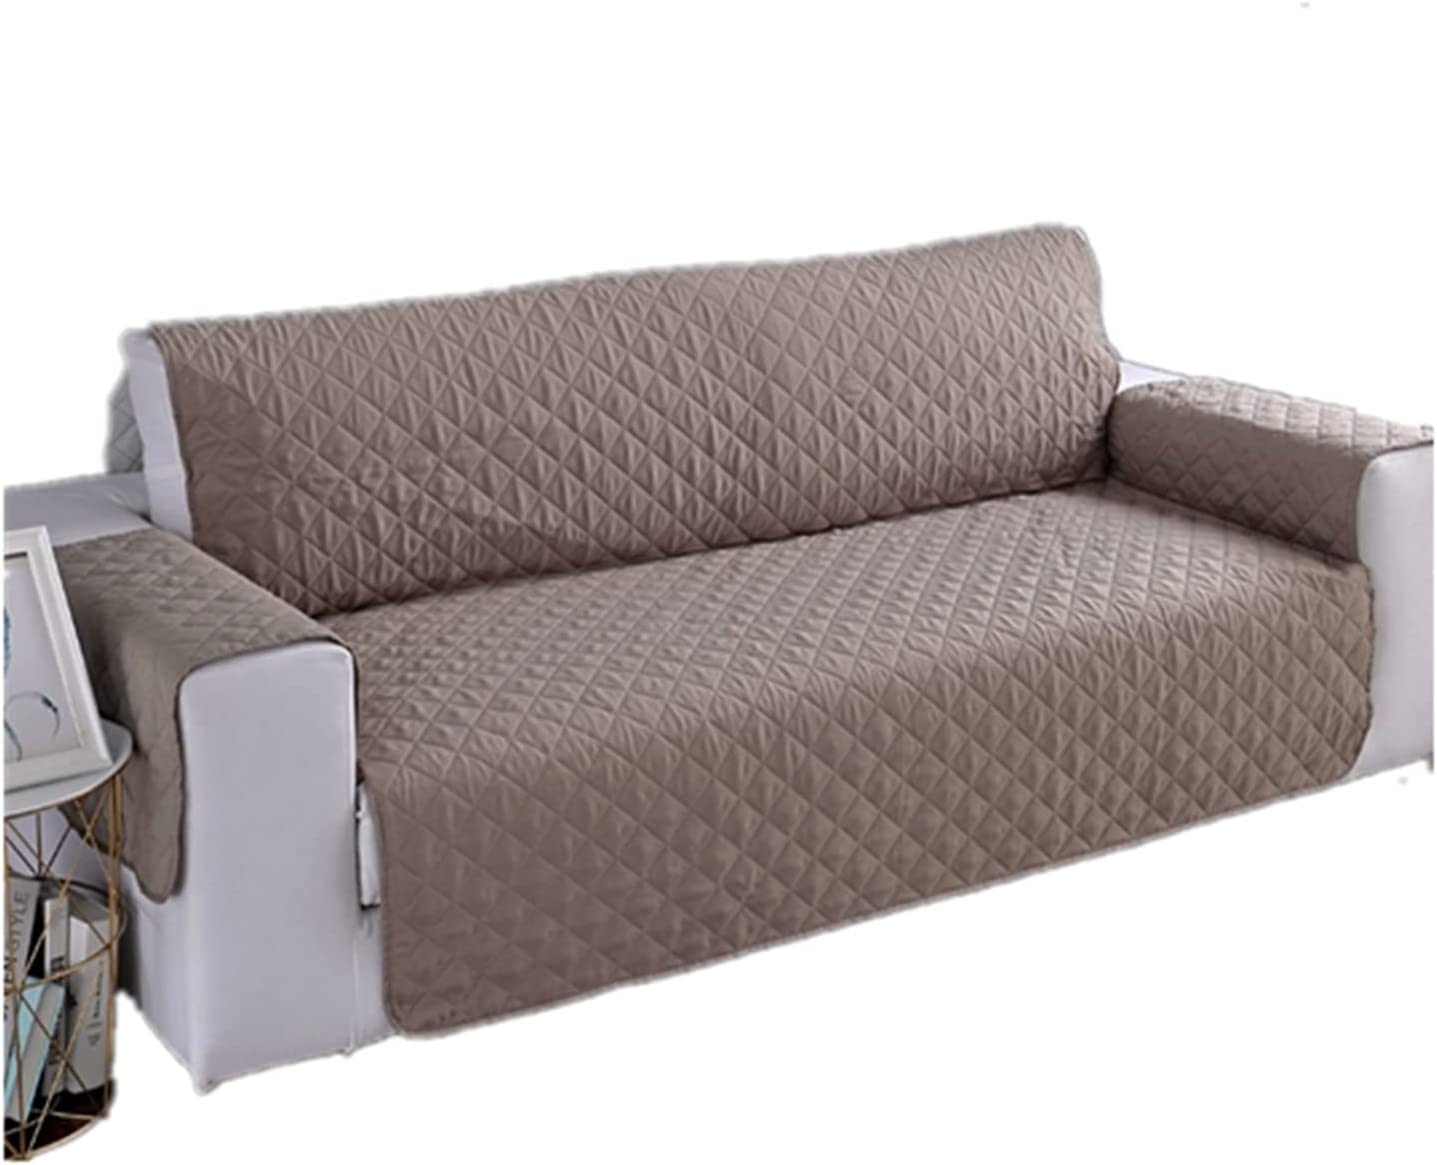 Mimosapud Couch Seat Cushion Removable Sofa Popularity Sale price Waterproof Mattress